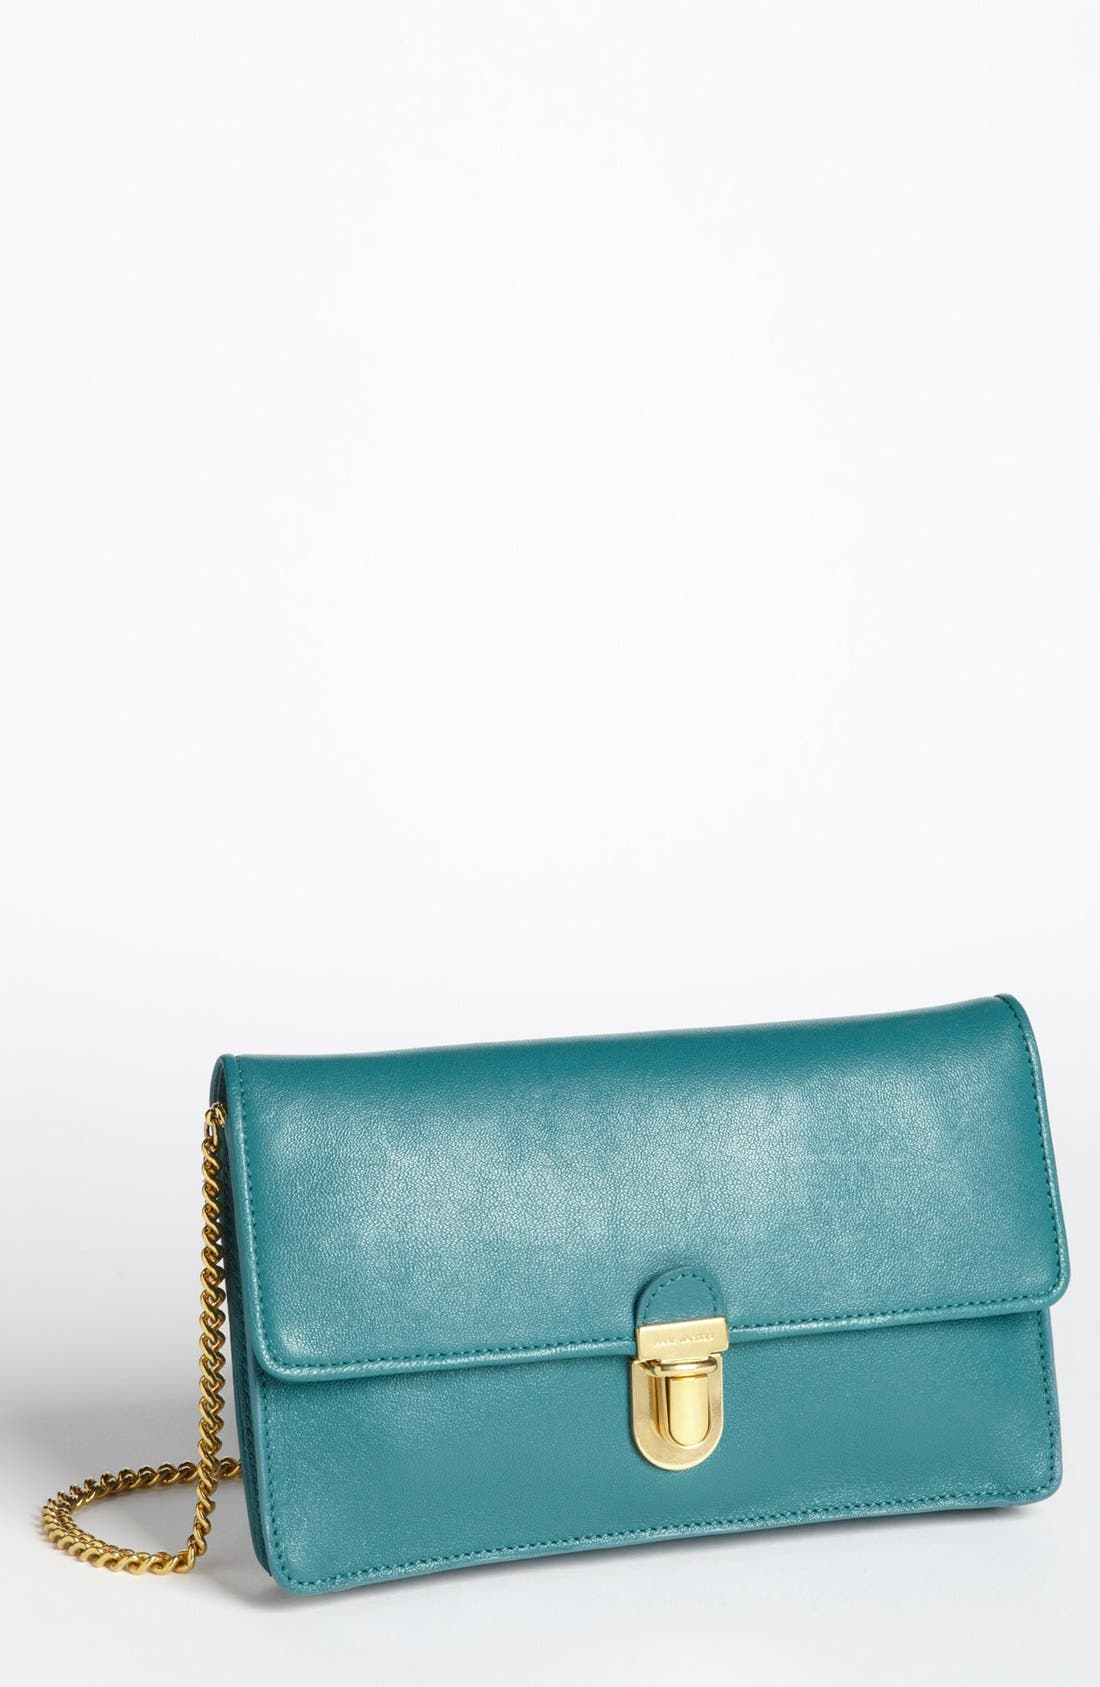 Alternate Image 1 Selected - MARC JACOBS Leather Clutch